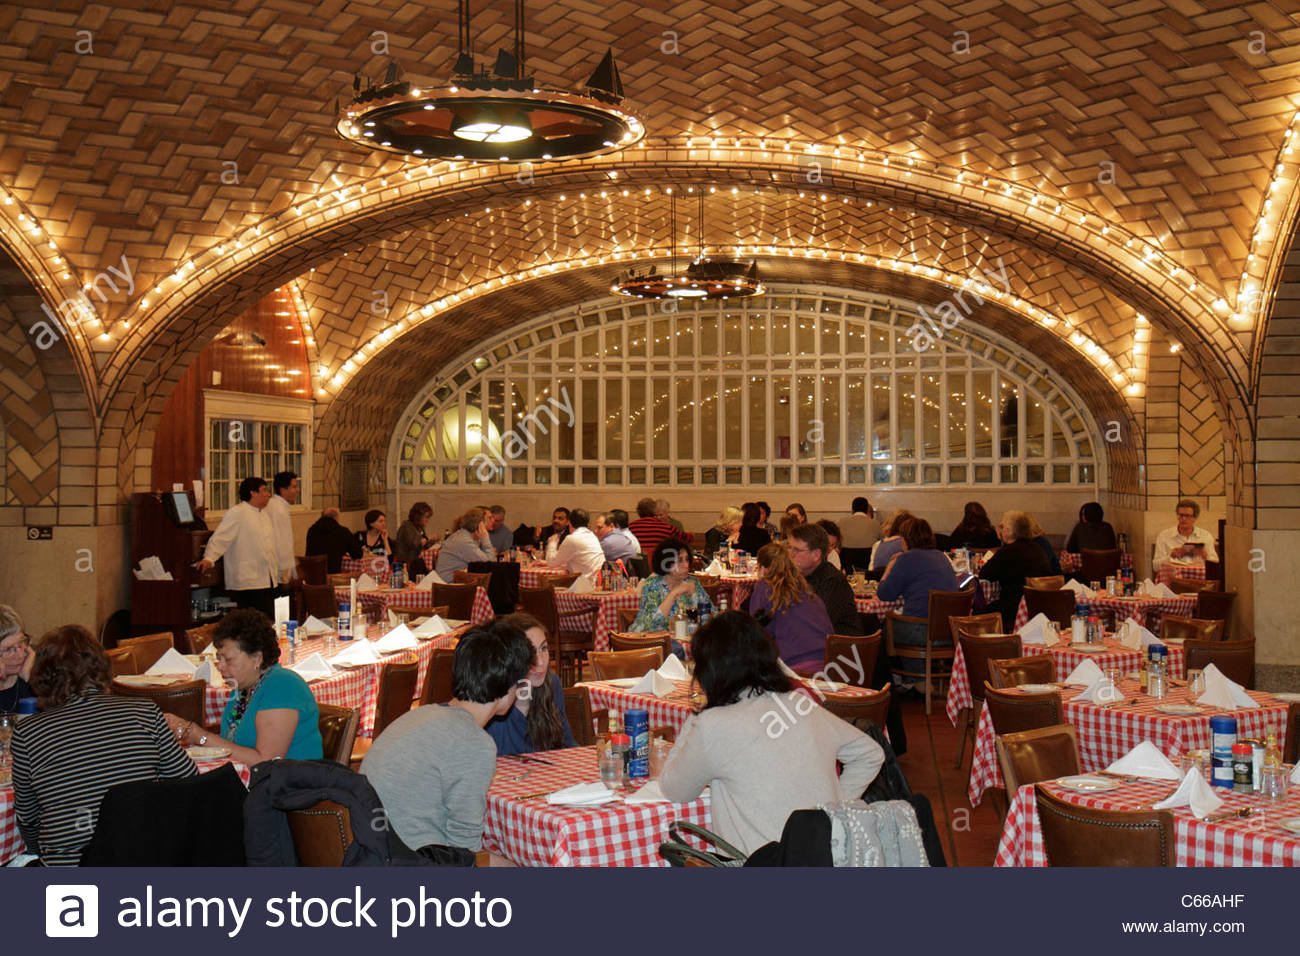 Grand Central Oyster Bar Stock Photos & Grand Central Oyster Bar ...